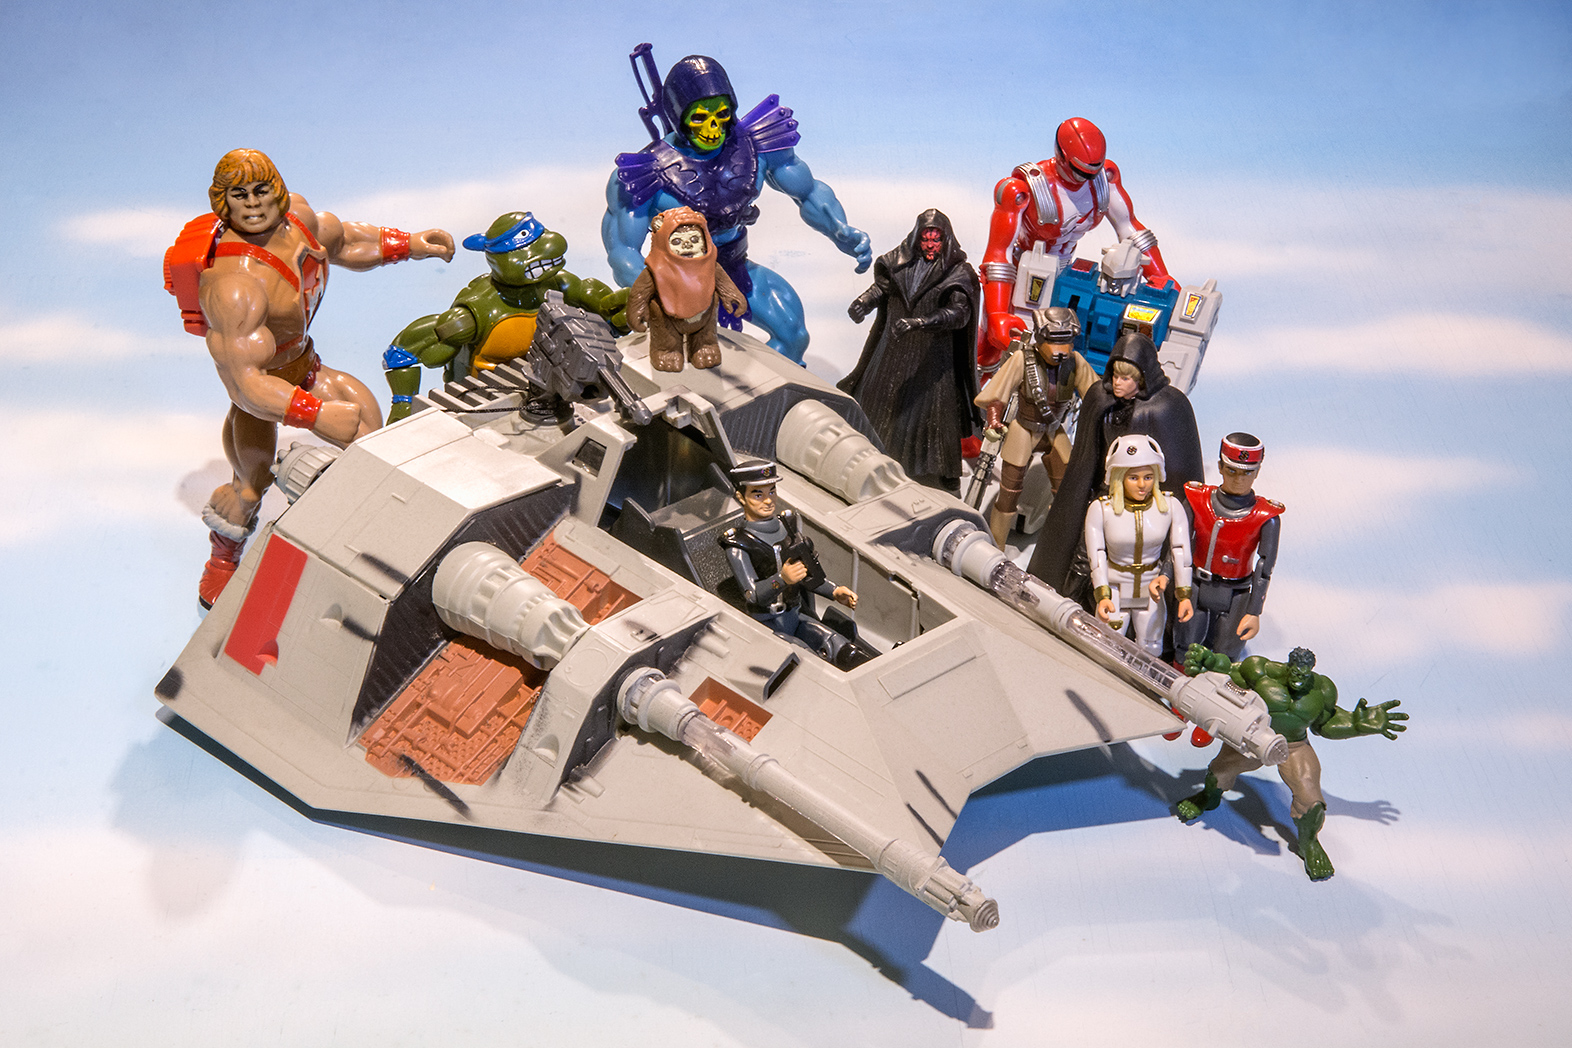 Scene of various action men including He-Man, The Hulk, Captain Scarlett, Characters from Star Wars and a Teenage Mutant Ninja Turtle